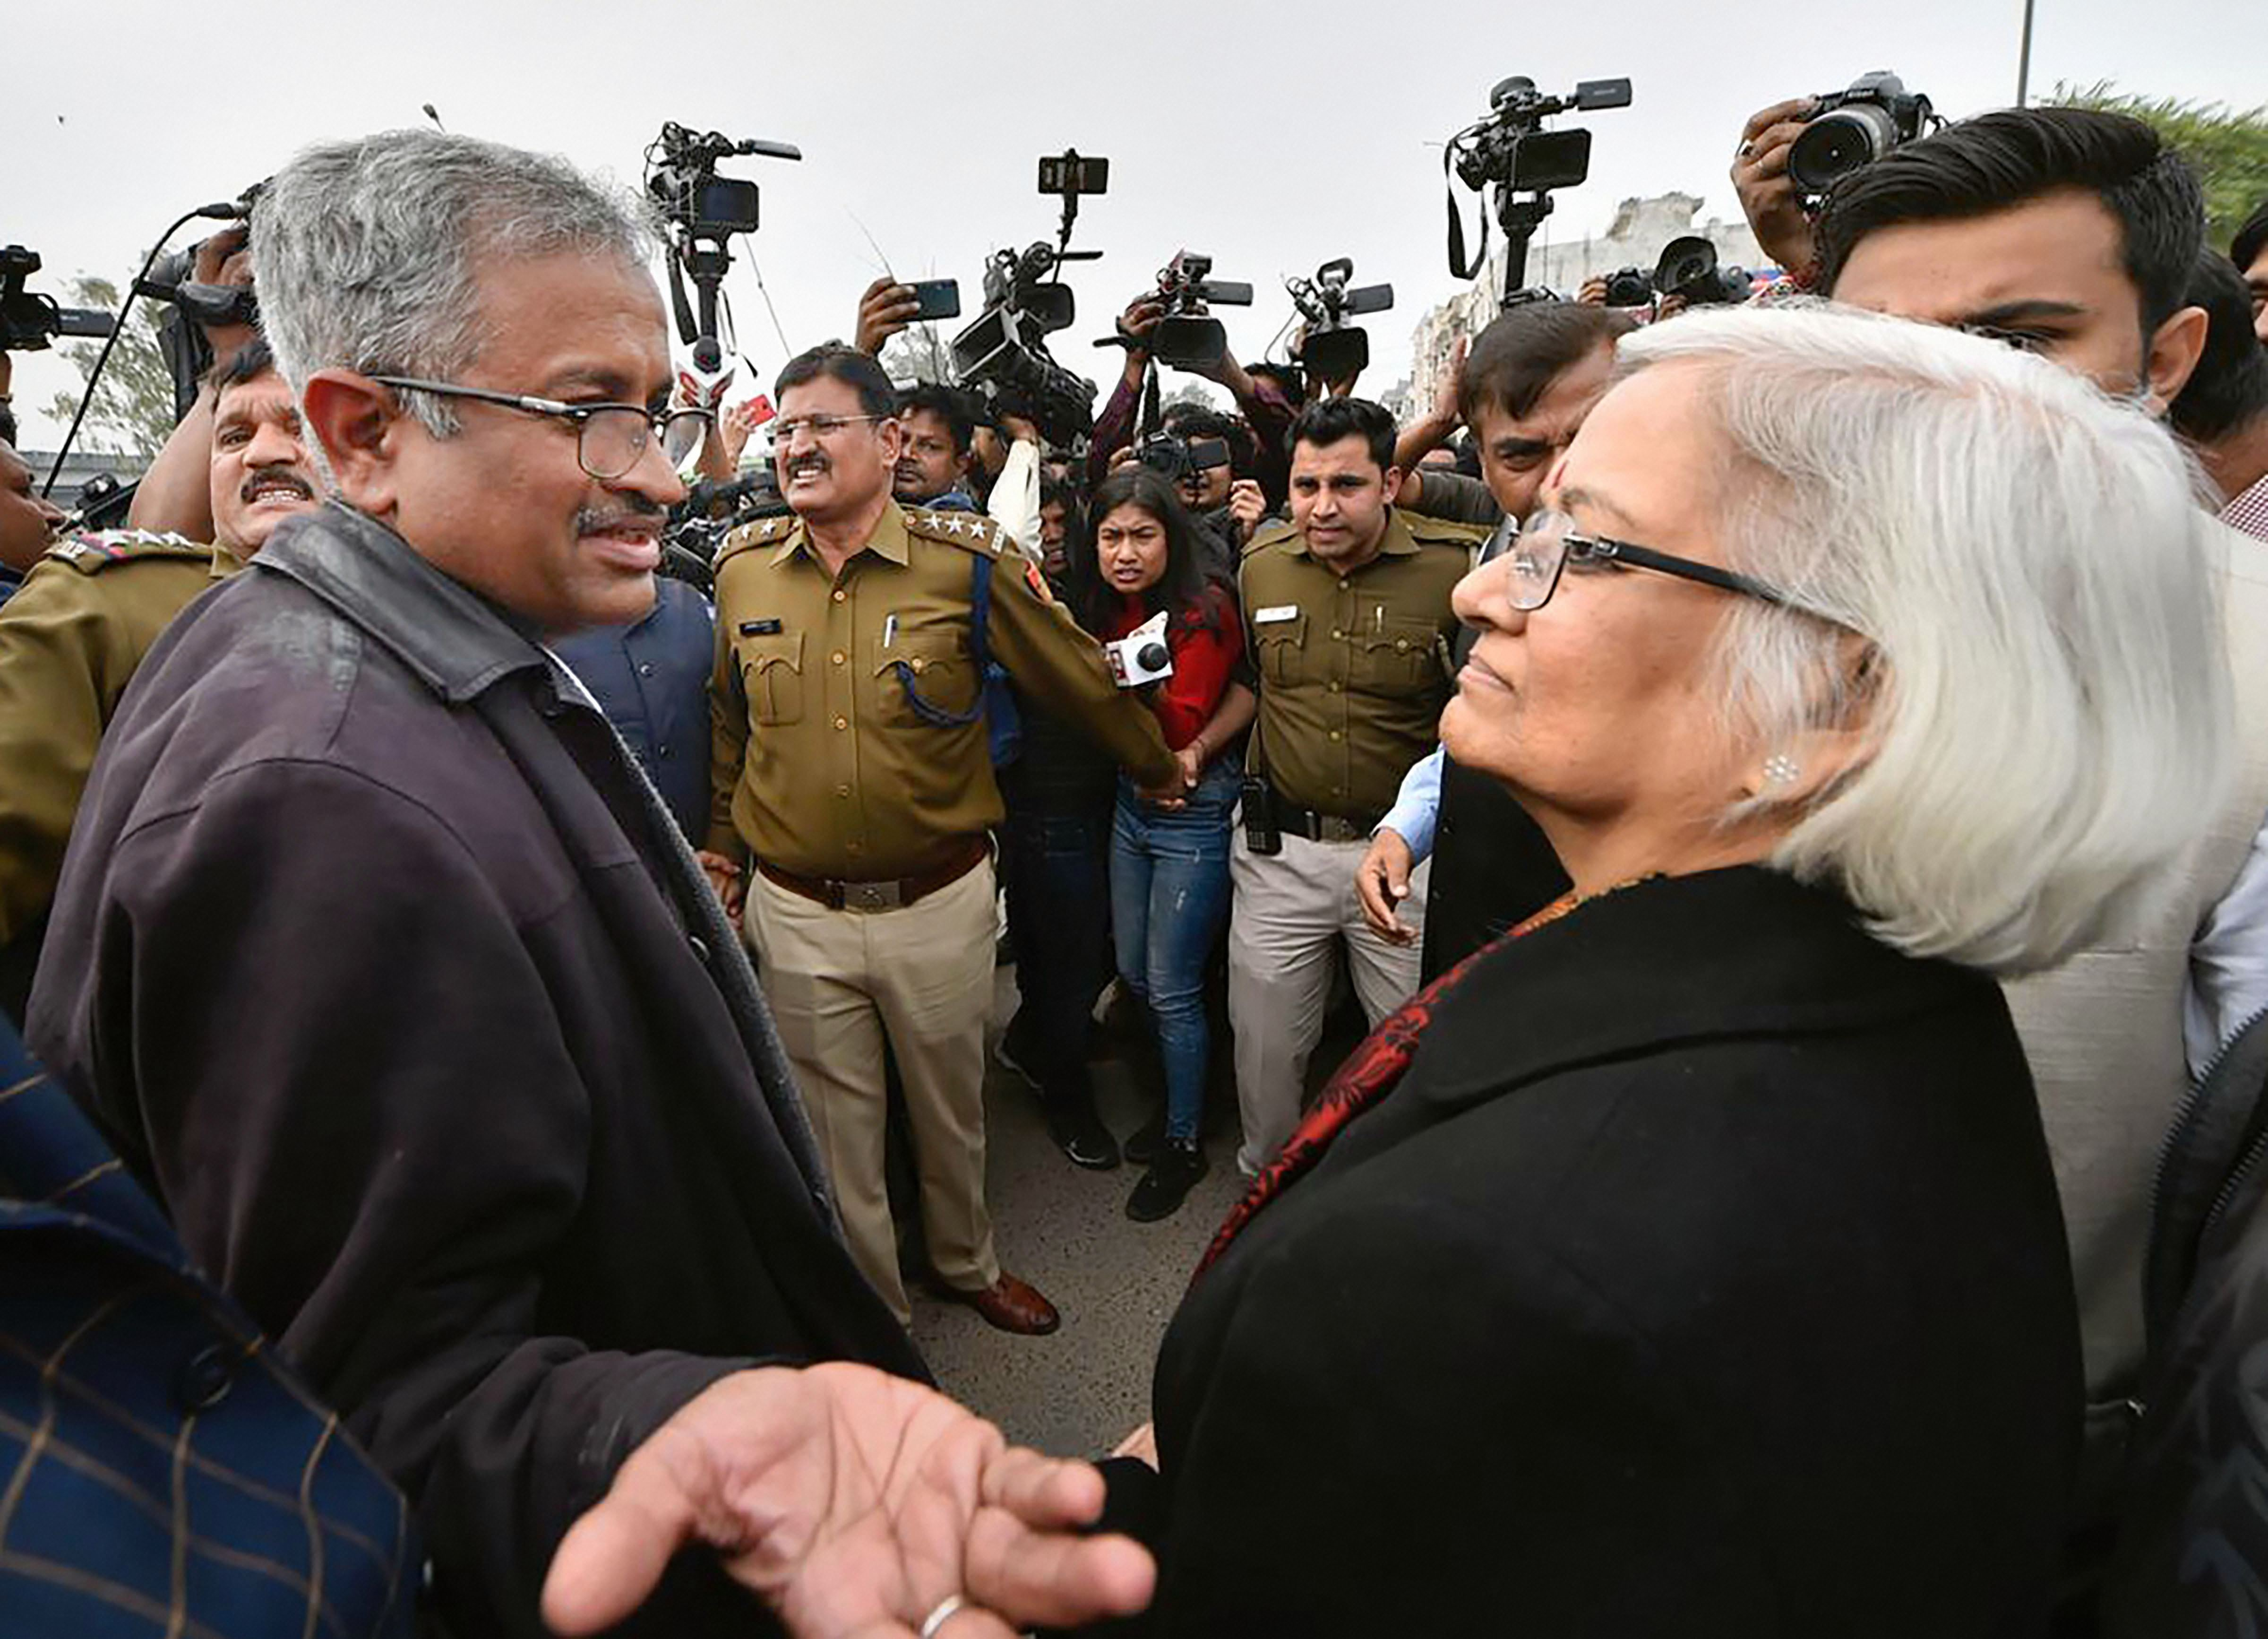 Sanjay Hegde and Sadhana Ramachandran - mediators appointed by Supreme Court - at Shaheen Bagh in New Delhi, Wednesday, February 19, 2020